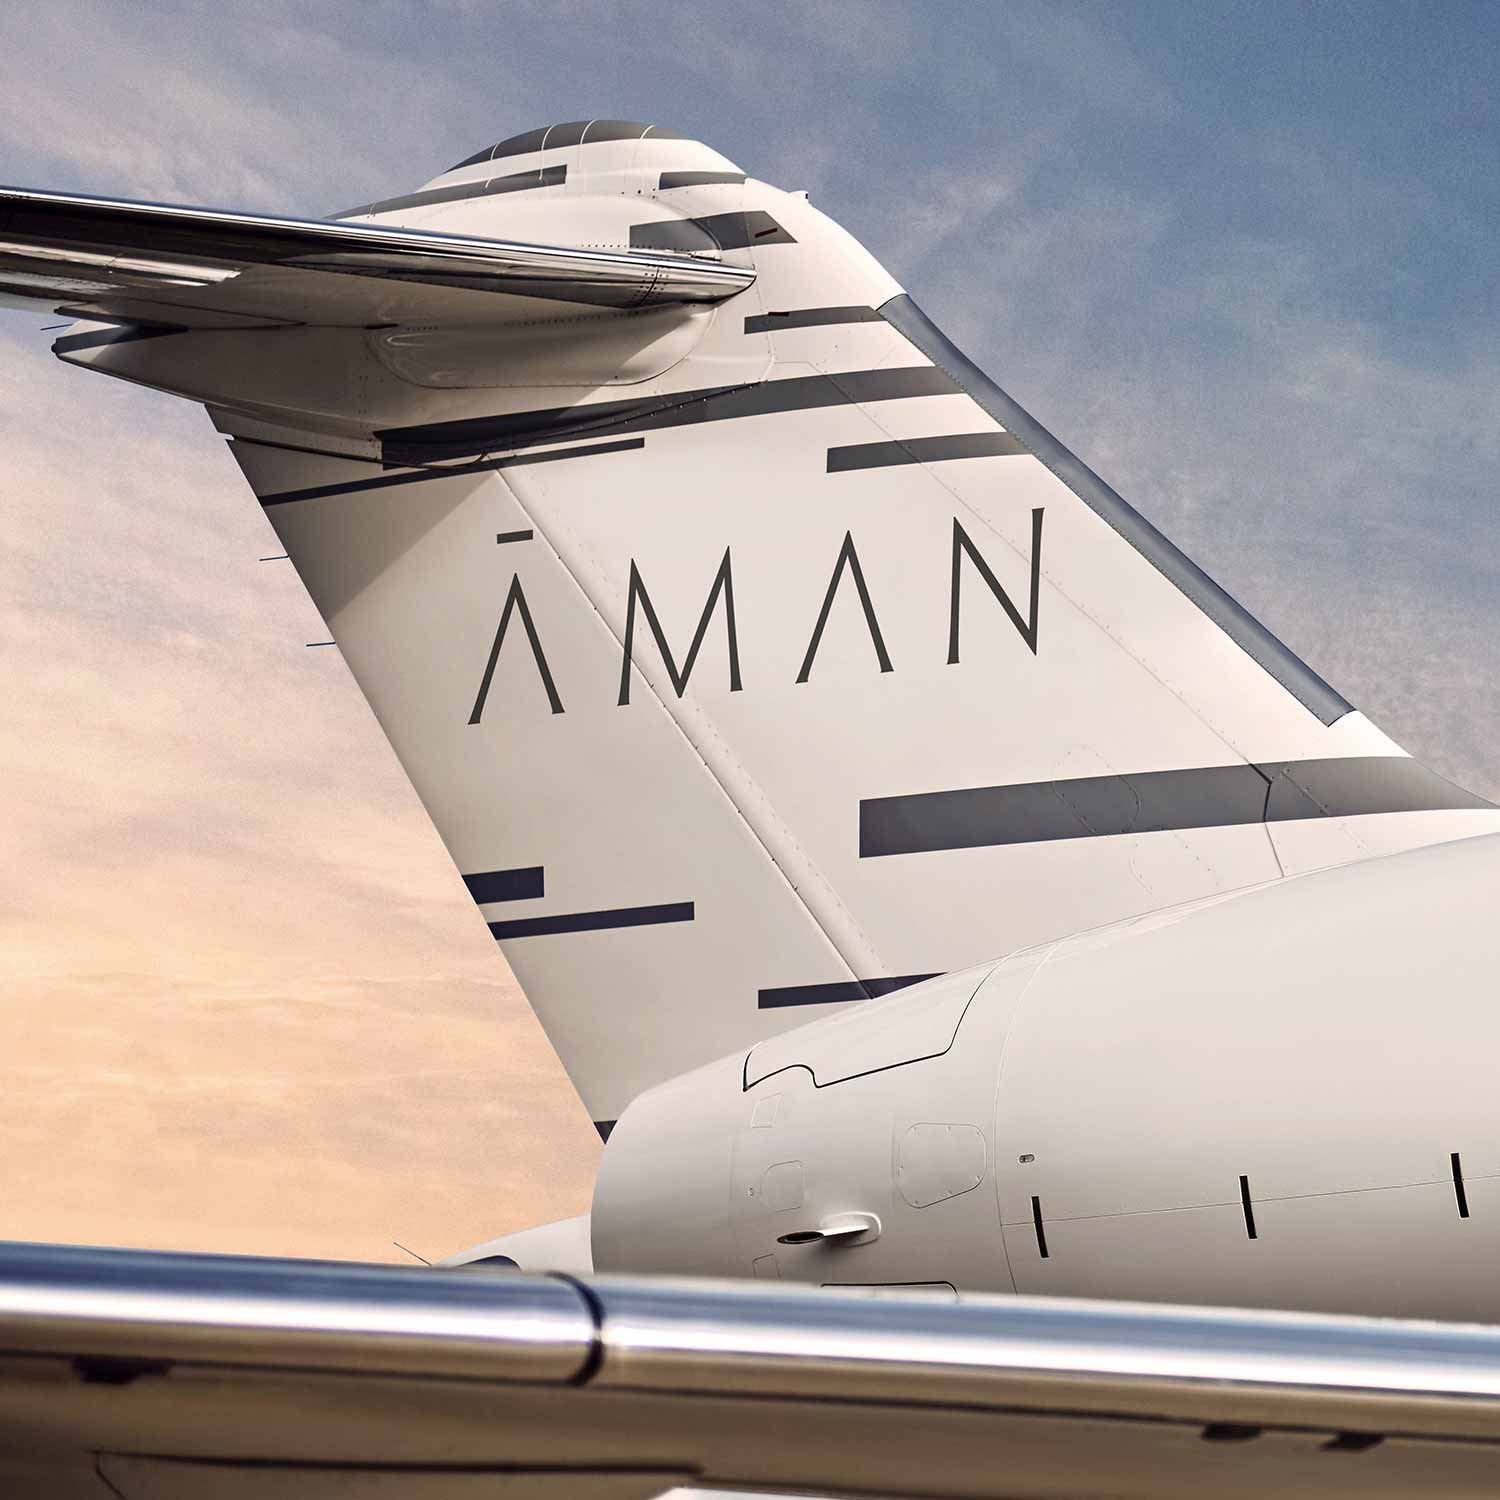 aman-private-jet-1500